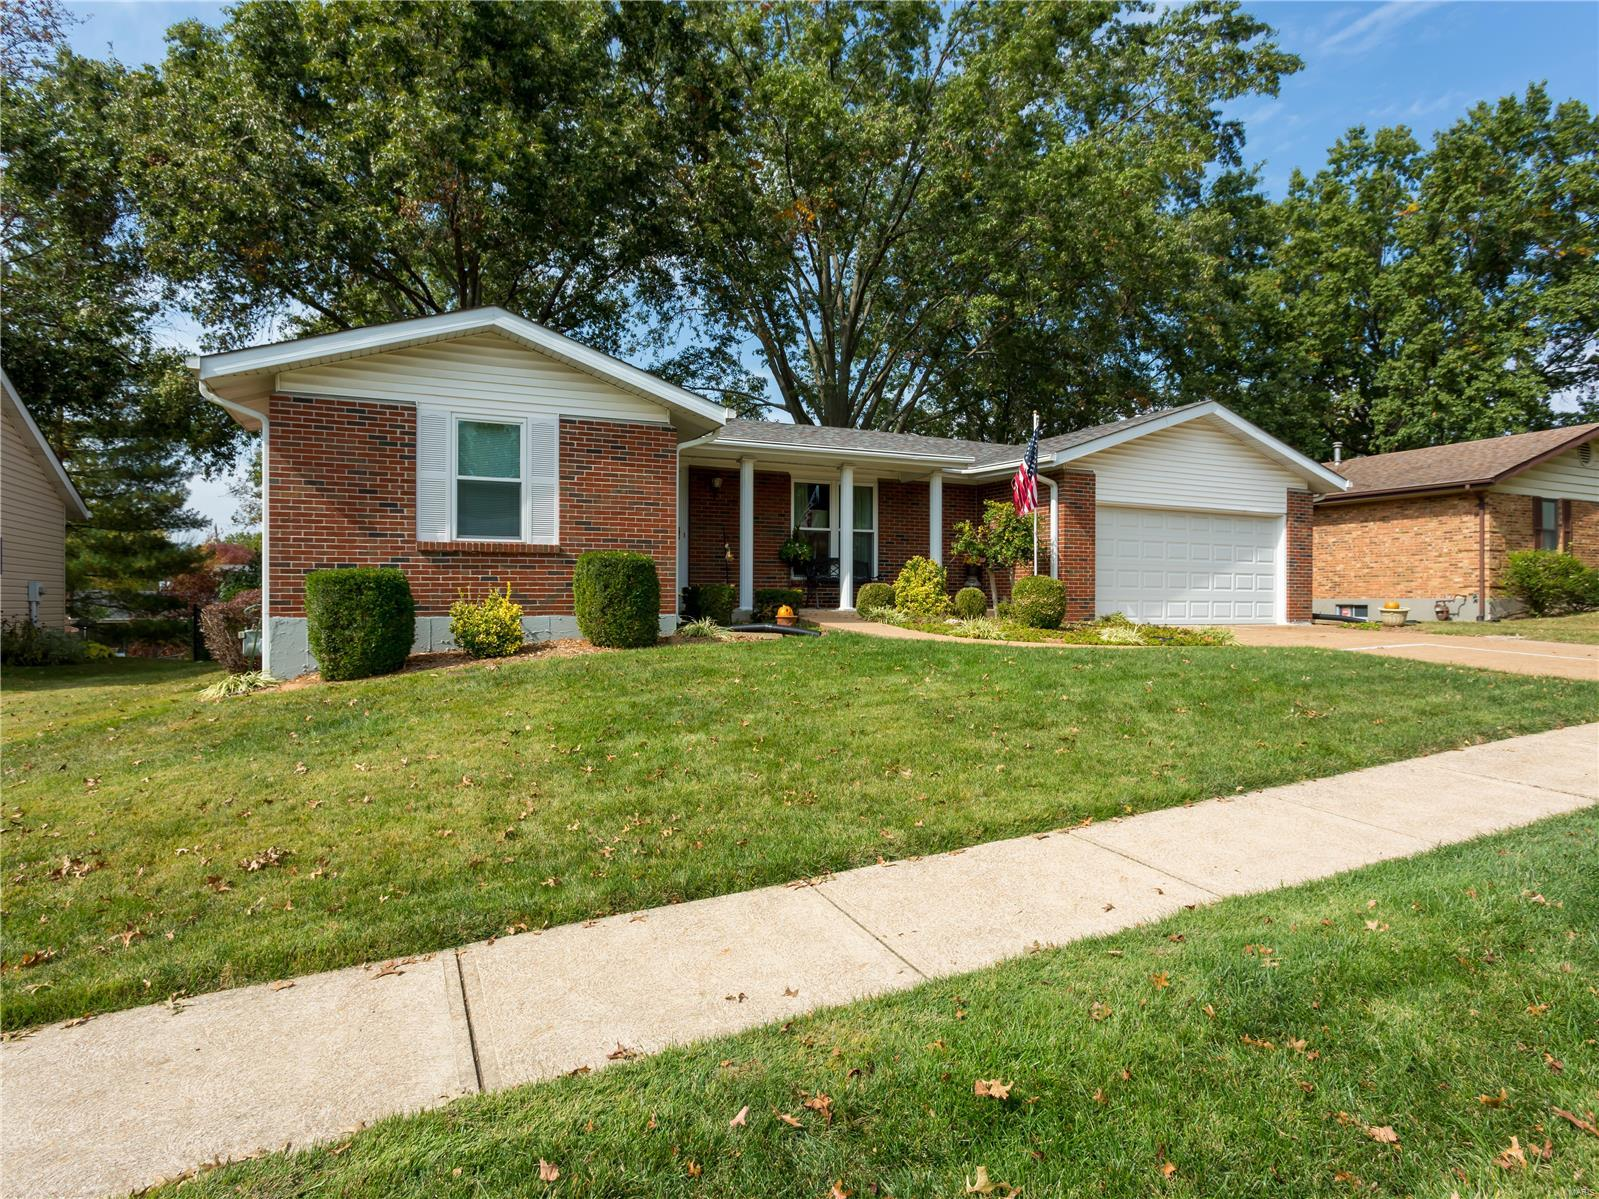 7053 Bumble Bee Property Photo - St Louis, MO real estate listing